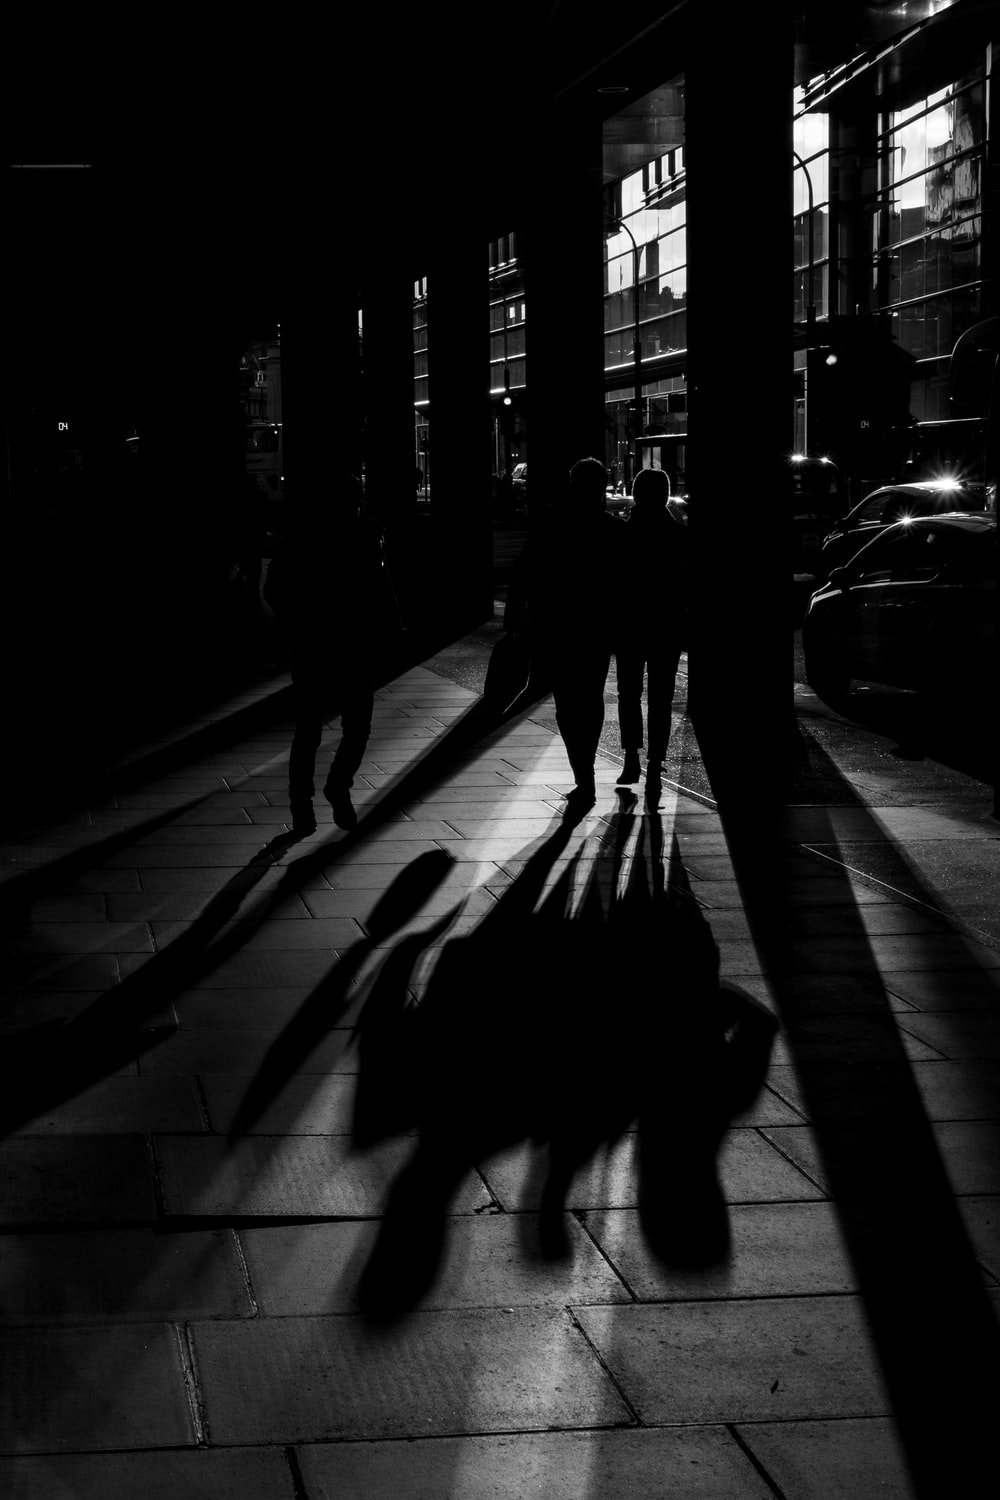 grayscale photography of people walking on pavement